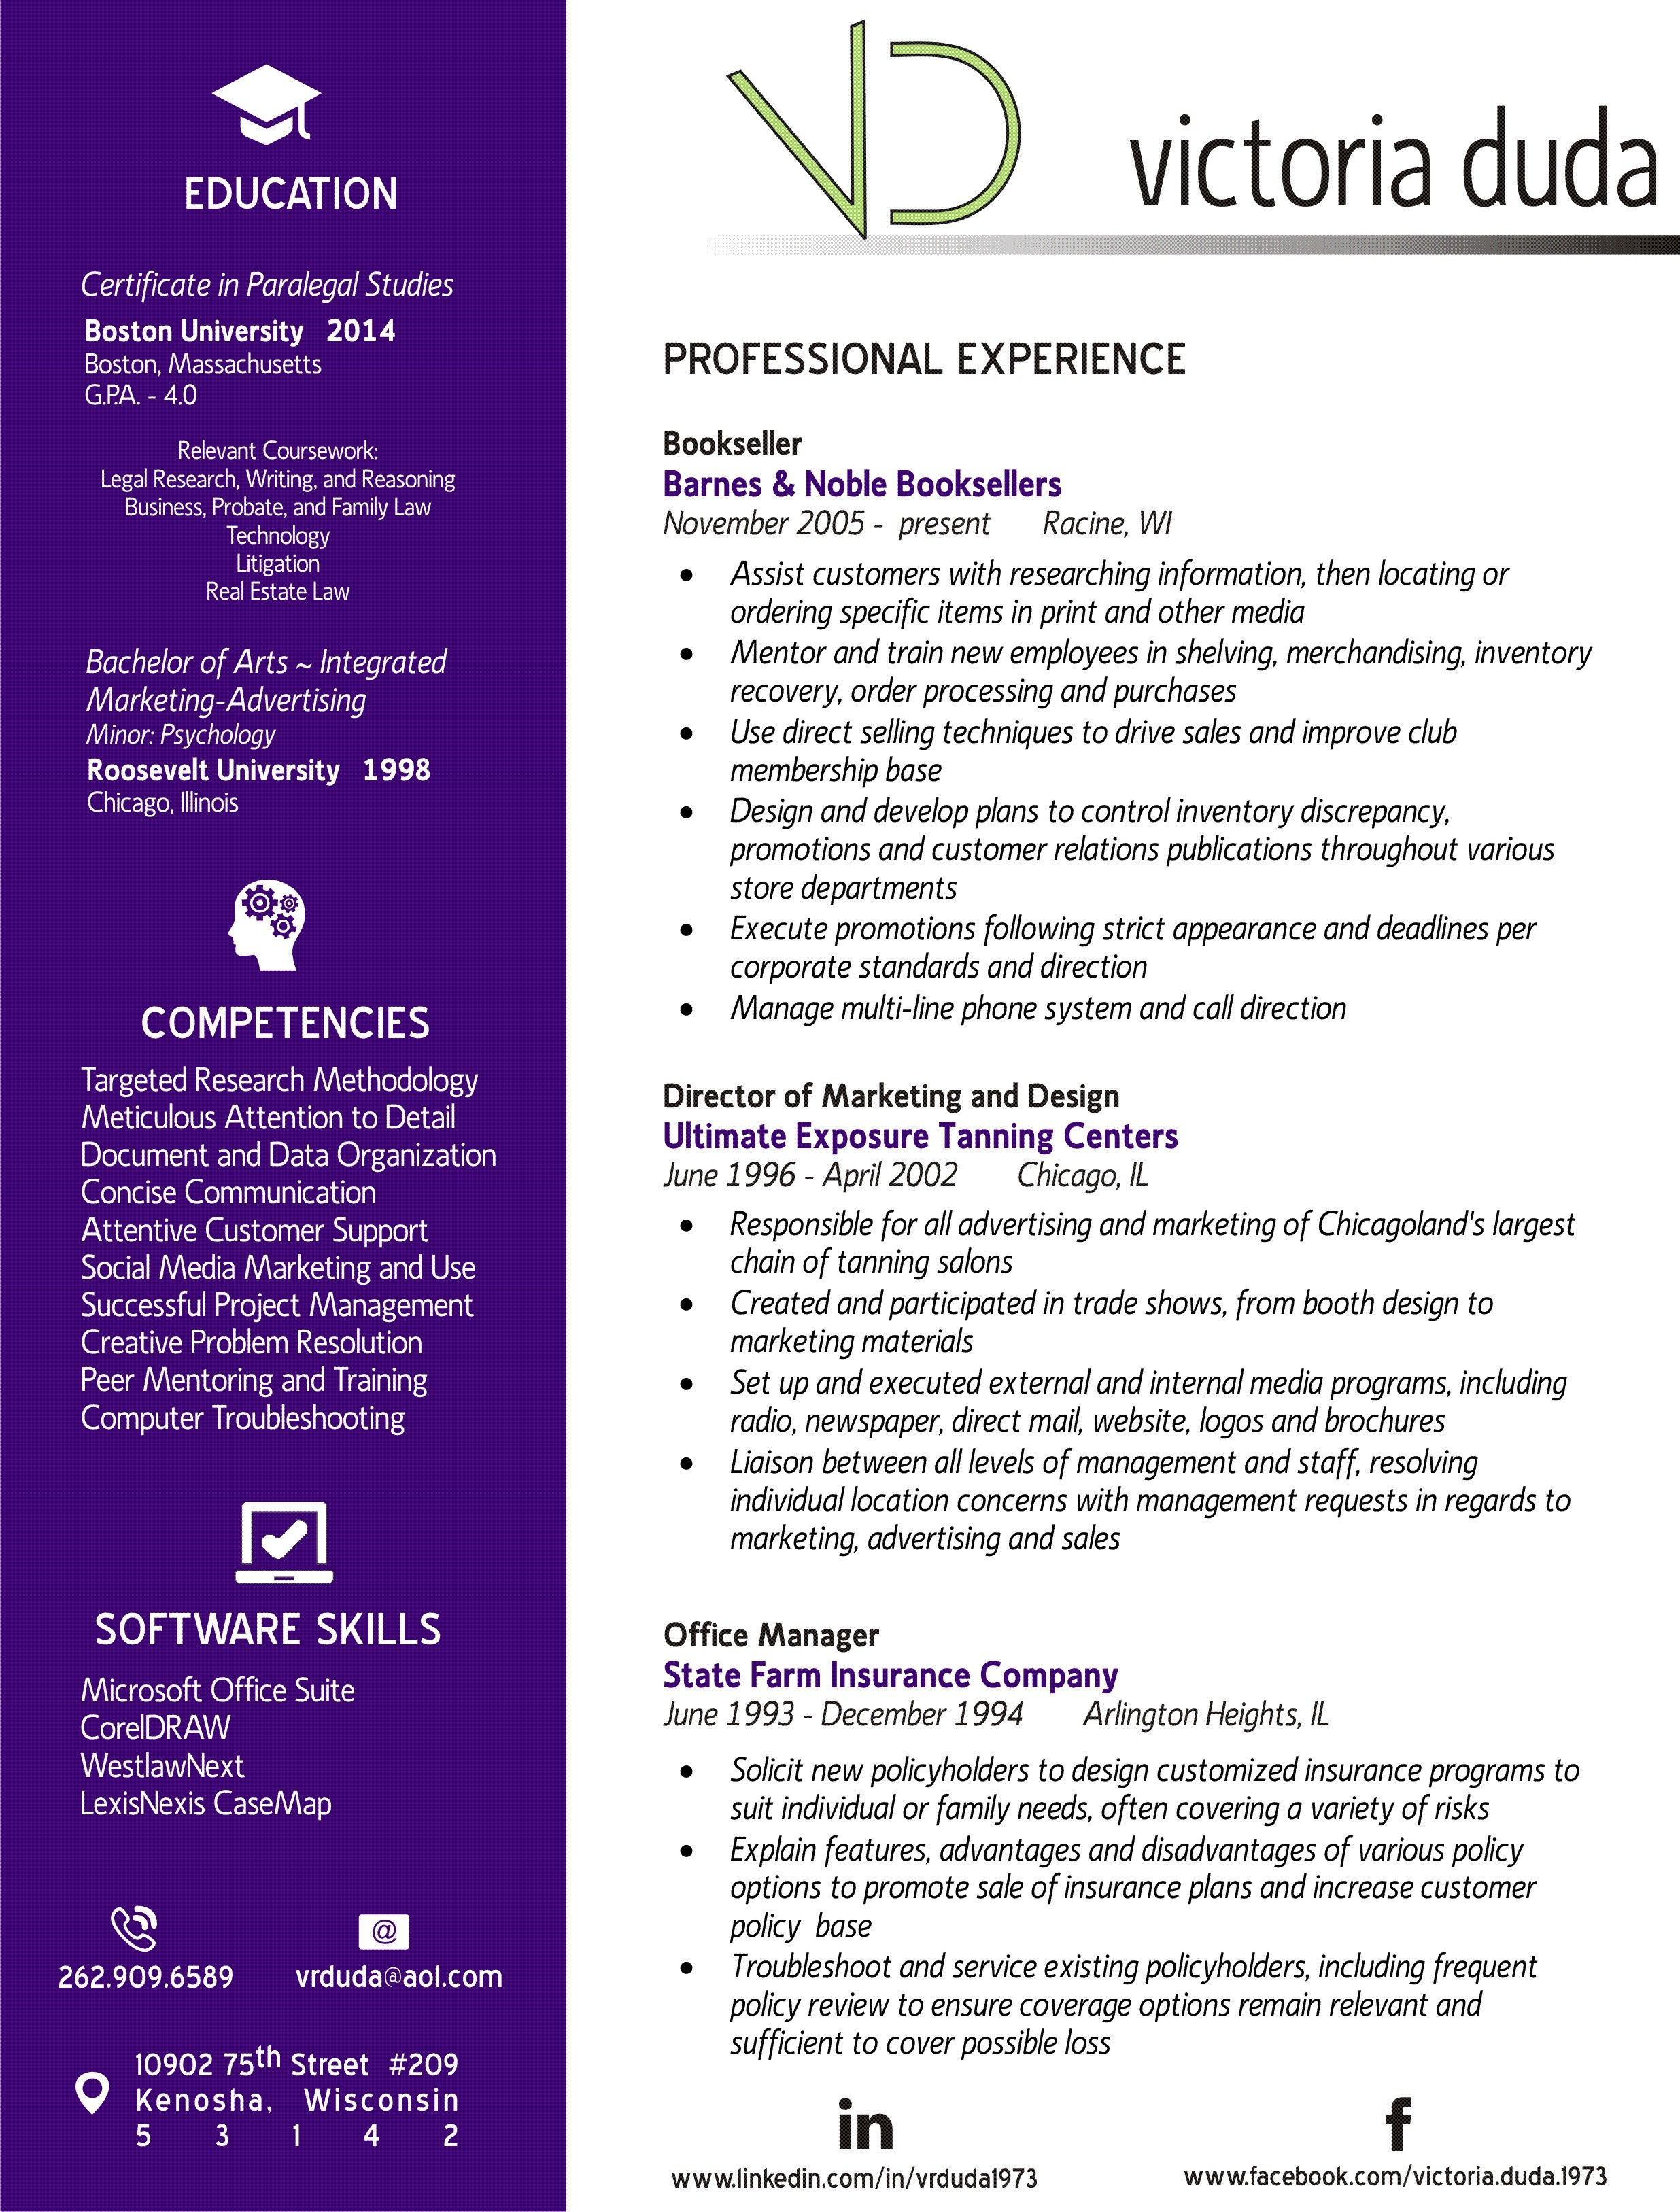 This Is My Custom Resume Created And Designed By Me Resume Paralegal Design Paralegal Resume Bachelor Of Arts